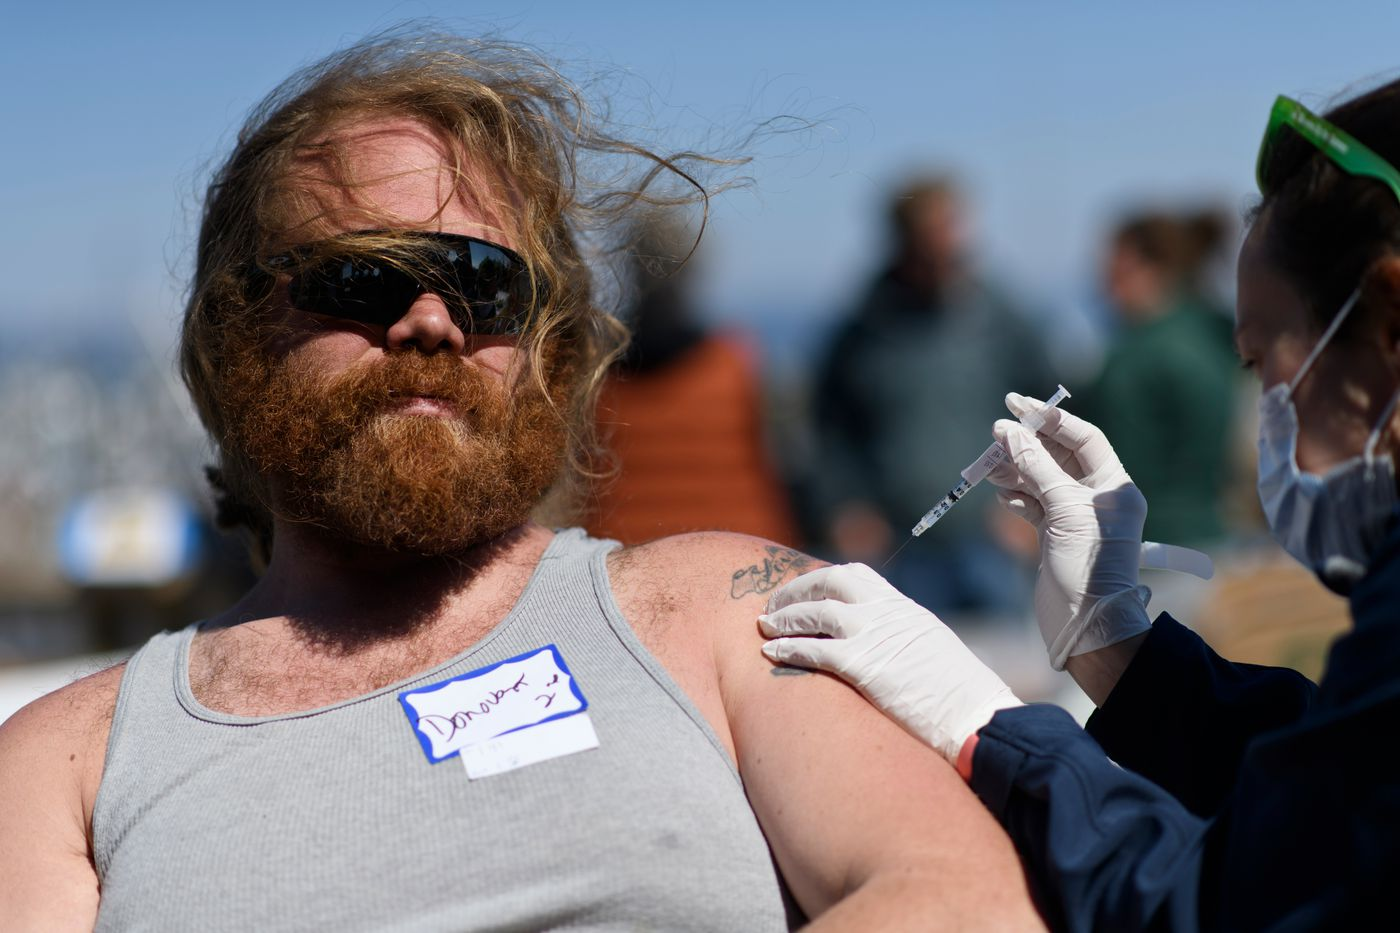 Donovan Goforth visited the pop-up vaccine clinic near the Homer boat harbor for his second dose of COVID-19 vaccine. Goforth said he wanted to be vaccinated so he could visit his grandparents in California. (Marc Lester / ADN)